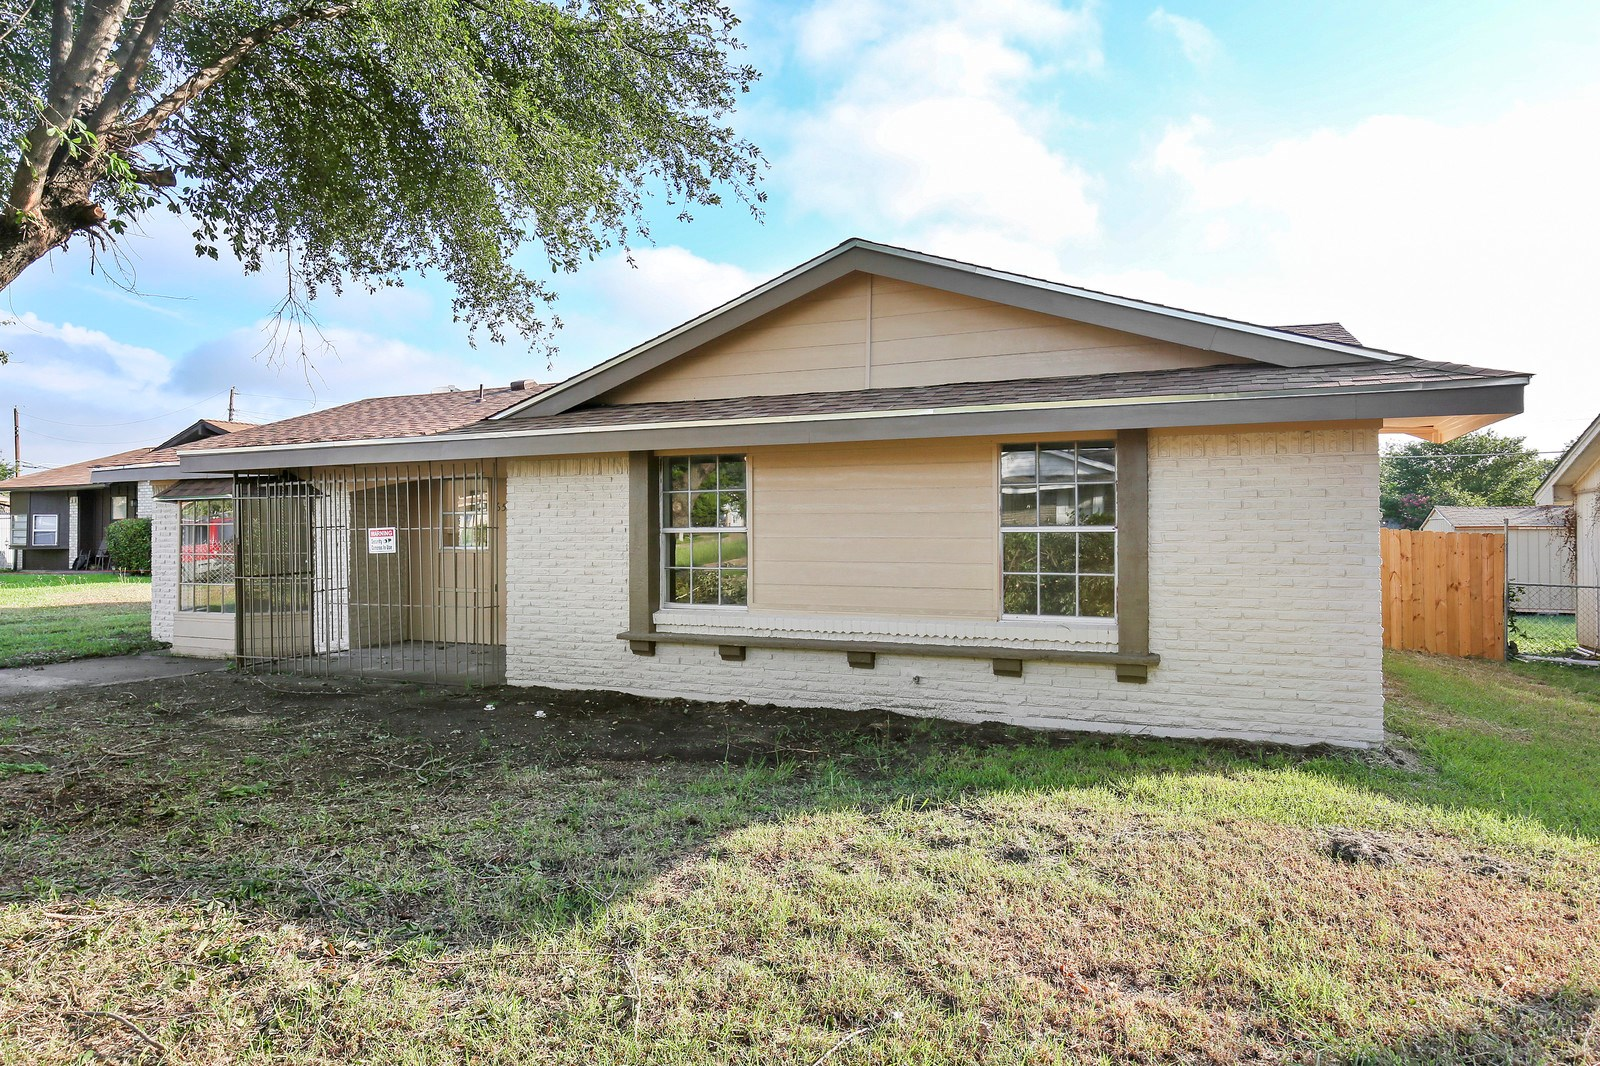 Home for Sale in Dallas TX Online Auction Live Auction